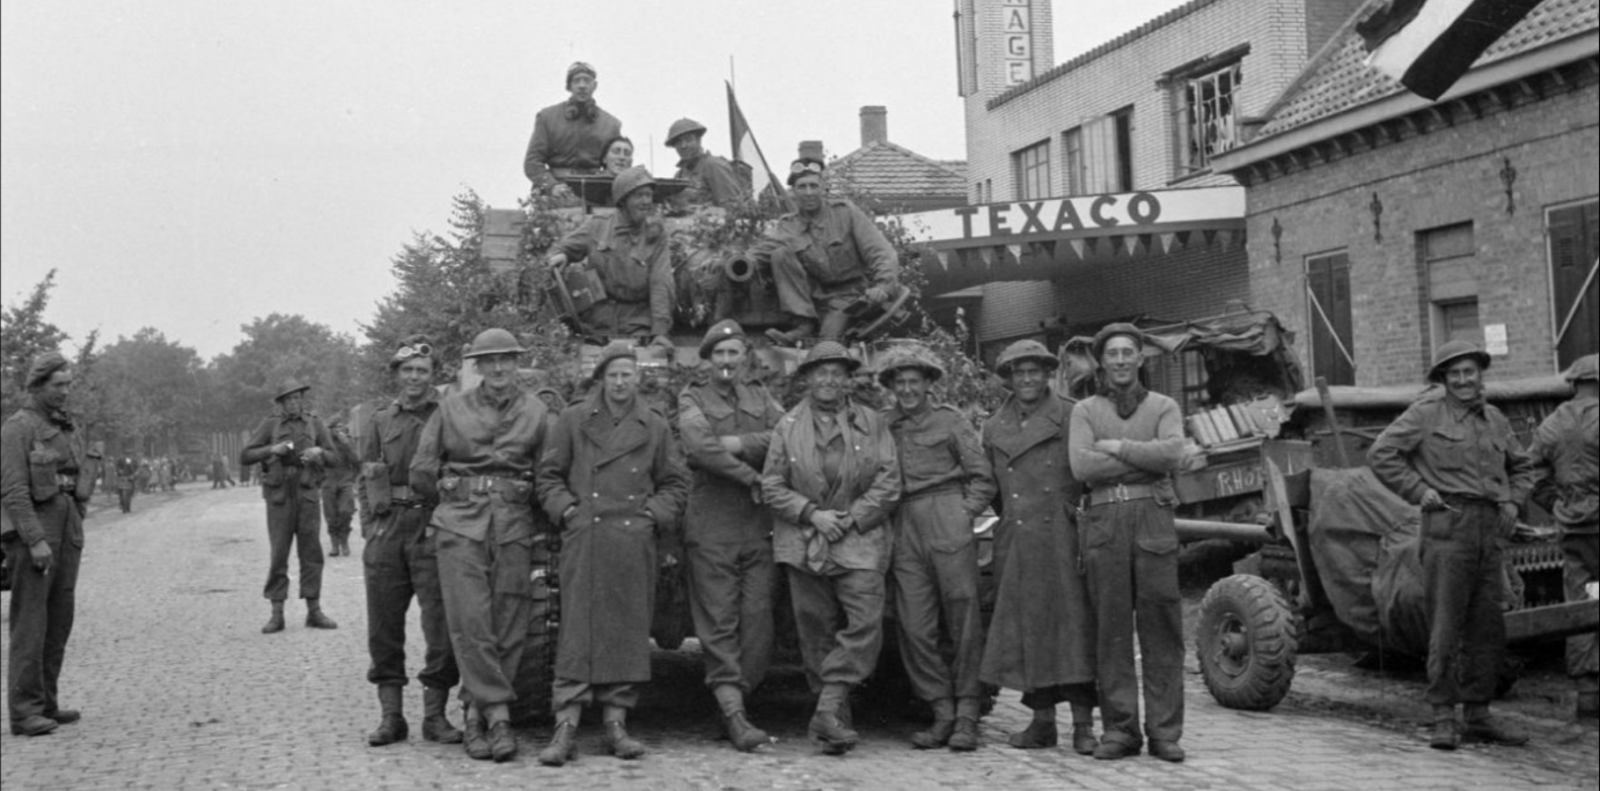 Irish Guards Group, Guards Armoured Division, Aalst, 18 Sept 44